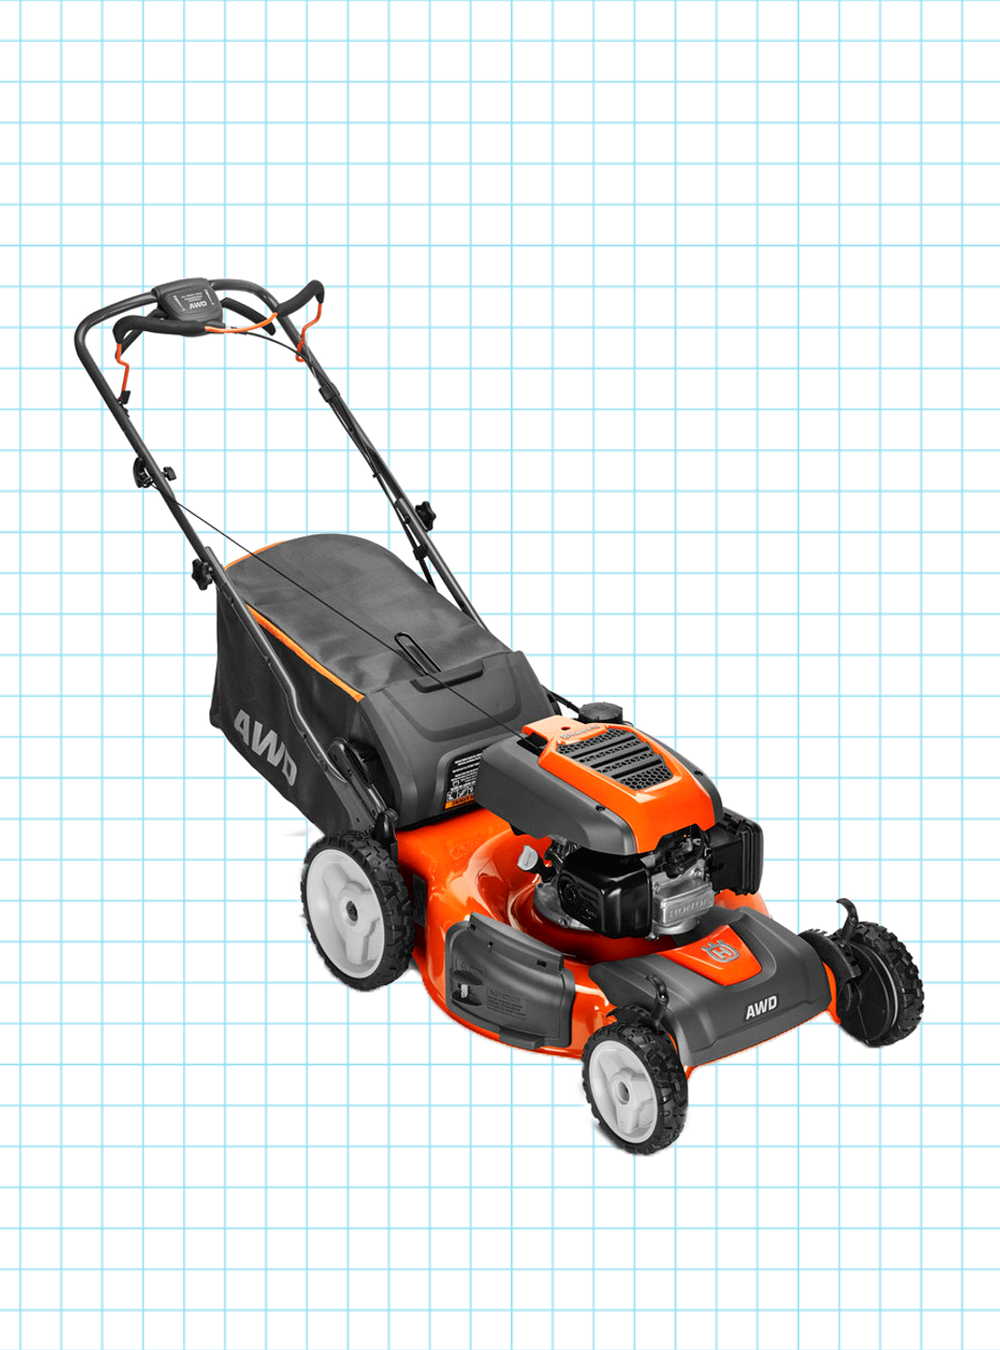 Husqvarna Hu800awdh Self Propelled Gas Lawn Mower With Honda Engine